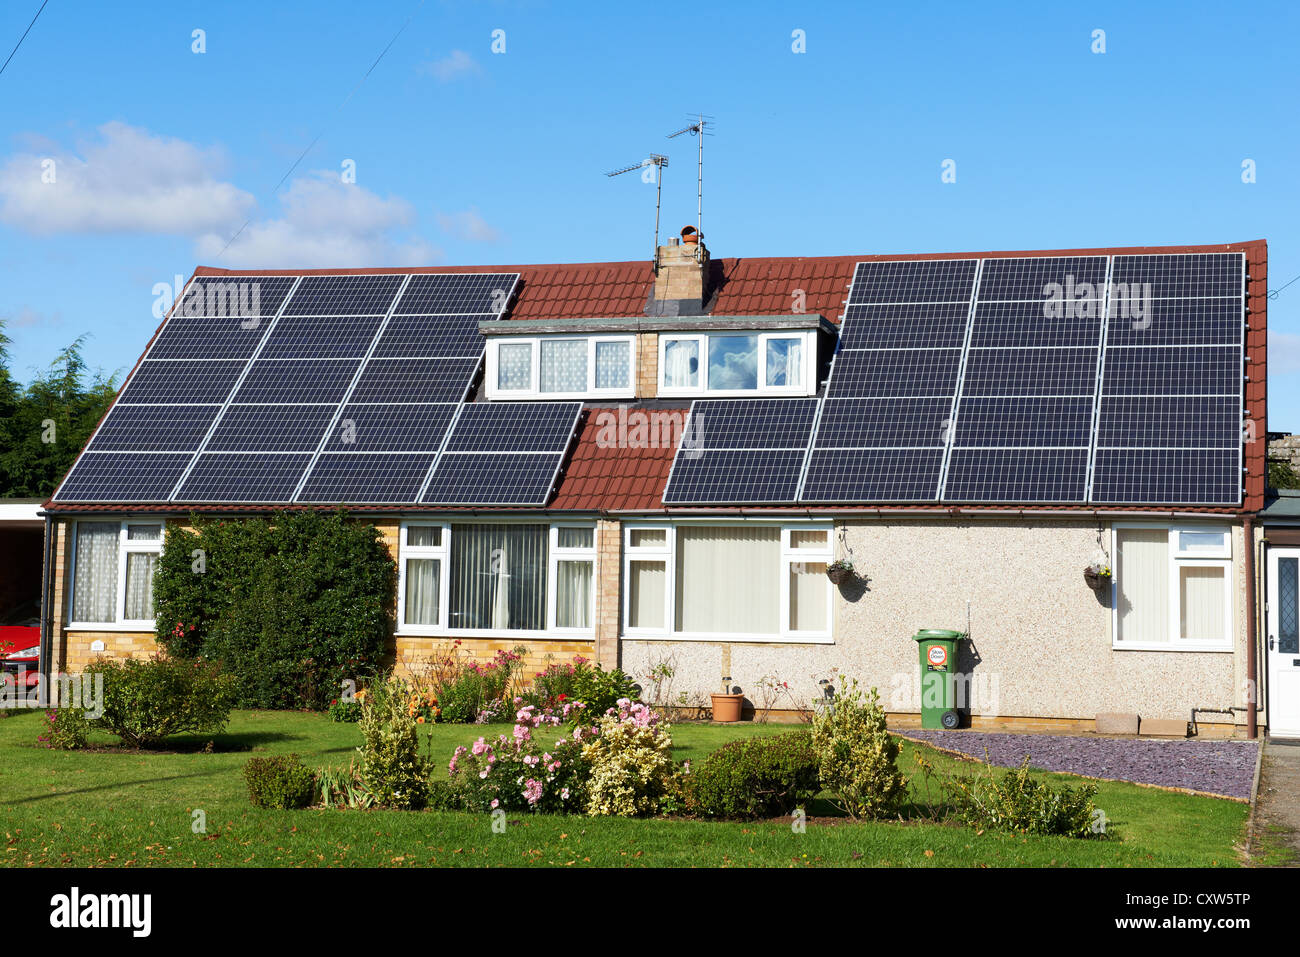 Semi detached dorma bungalows with solar panels on the roof Hilmorton Road Rugby UK - Stock Image